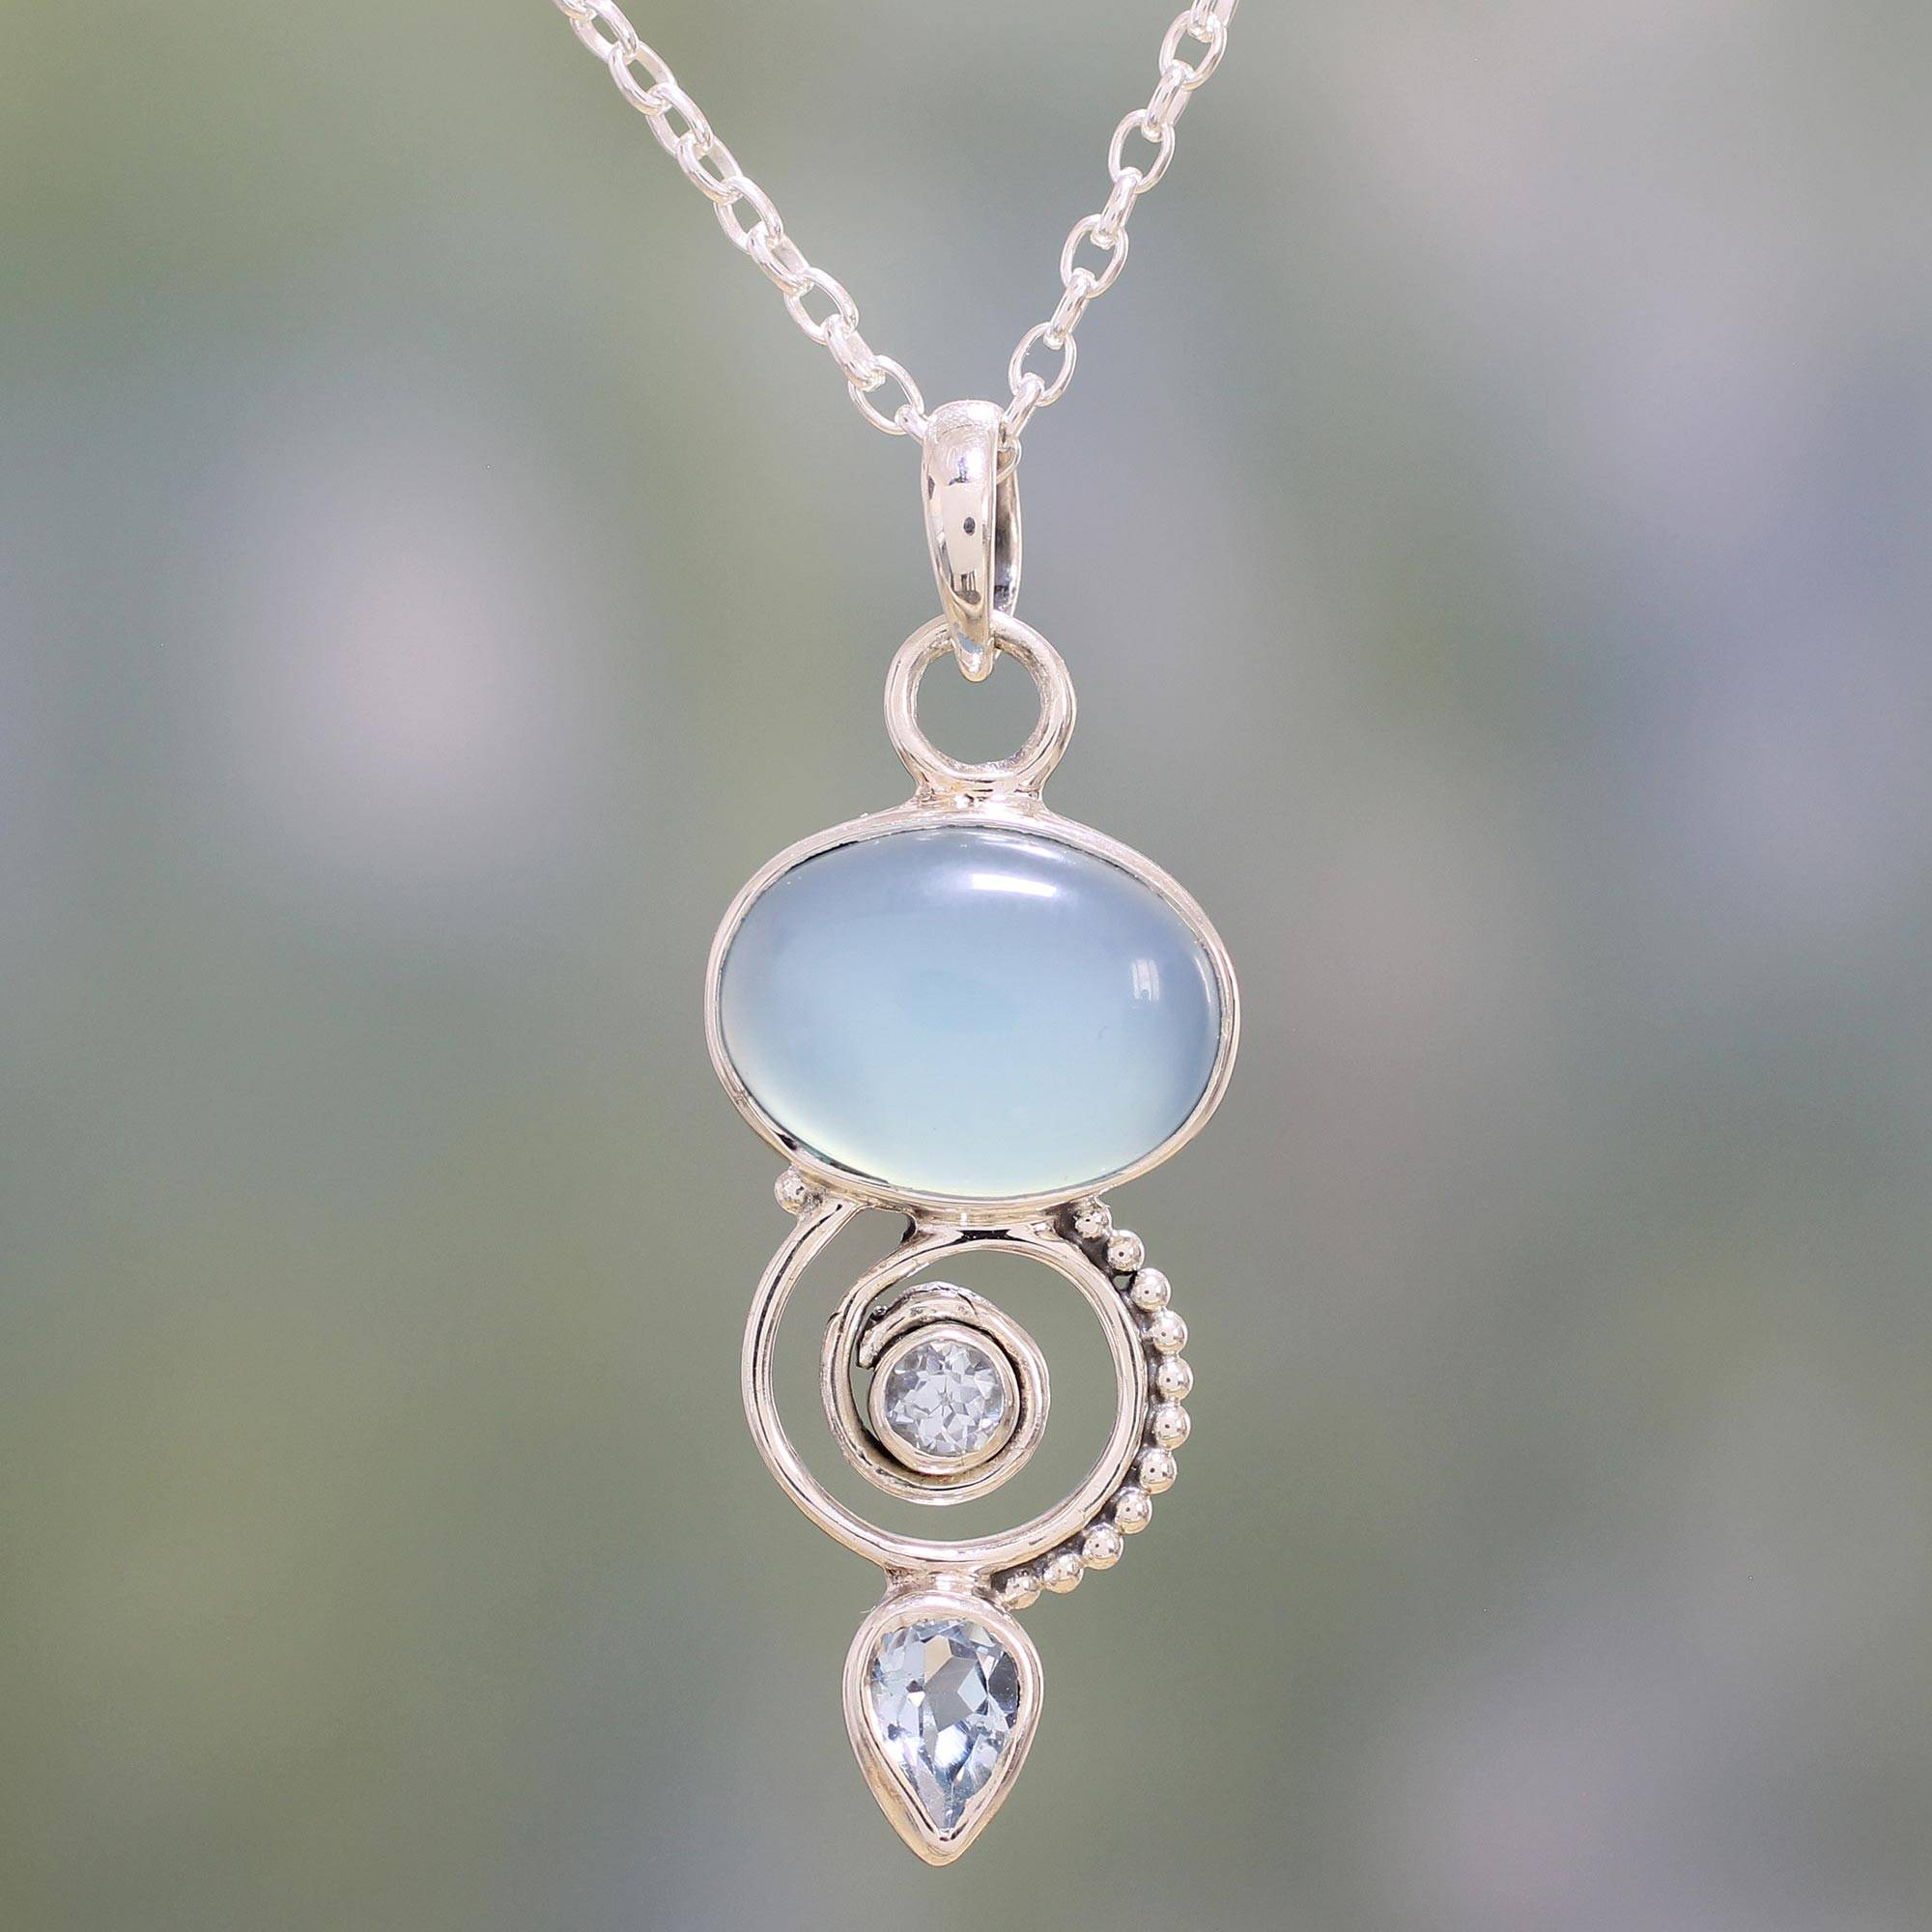 necklace silver sterling agate store pendant in blue chalcedony serenity